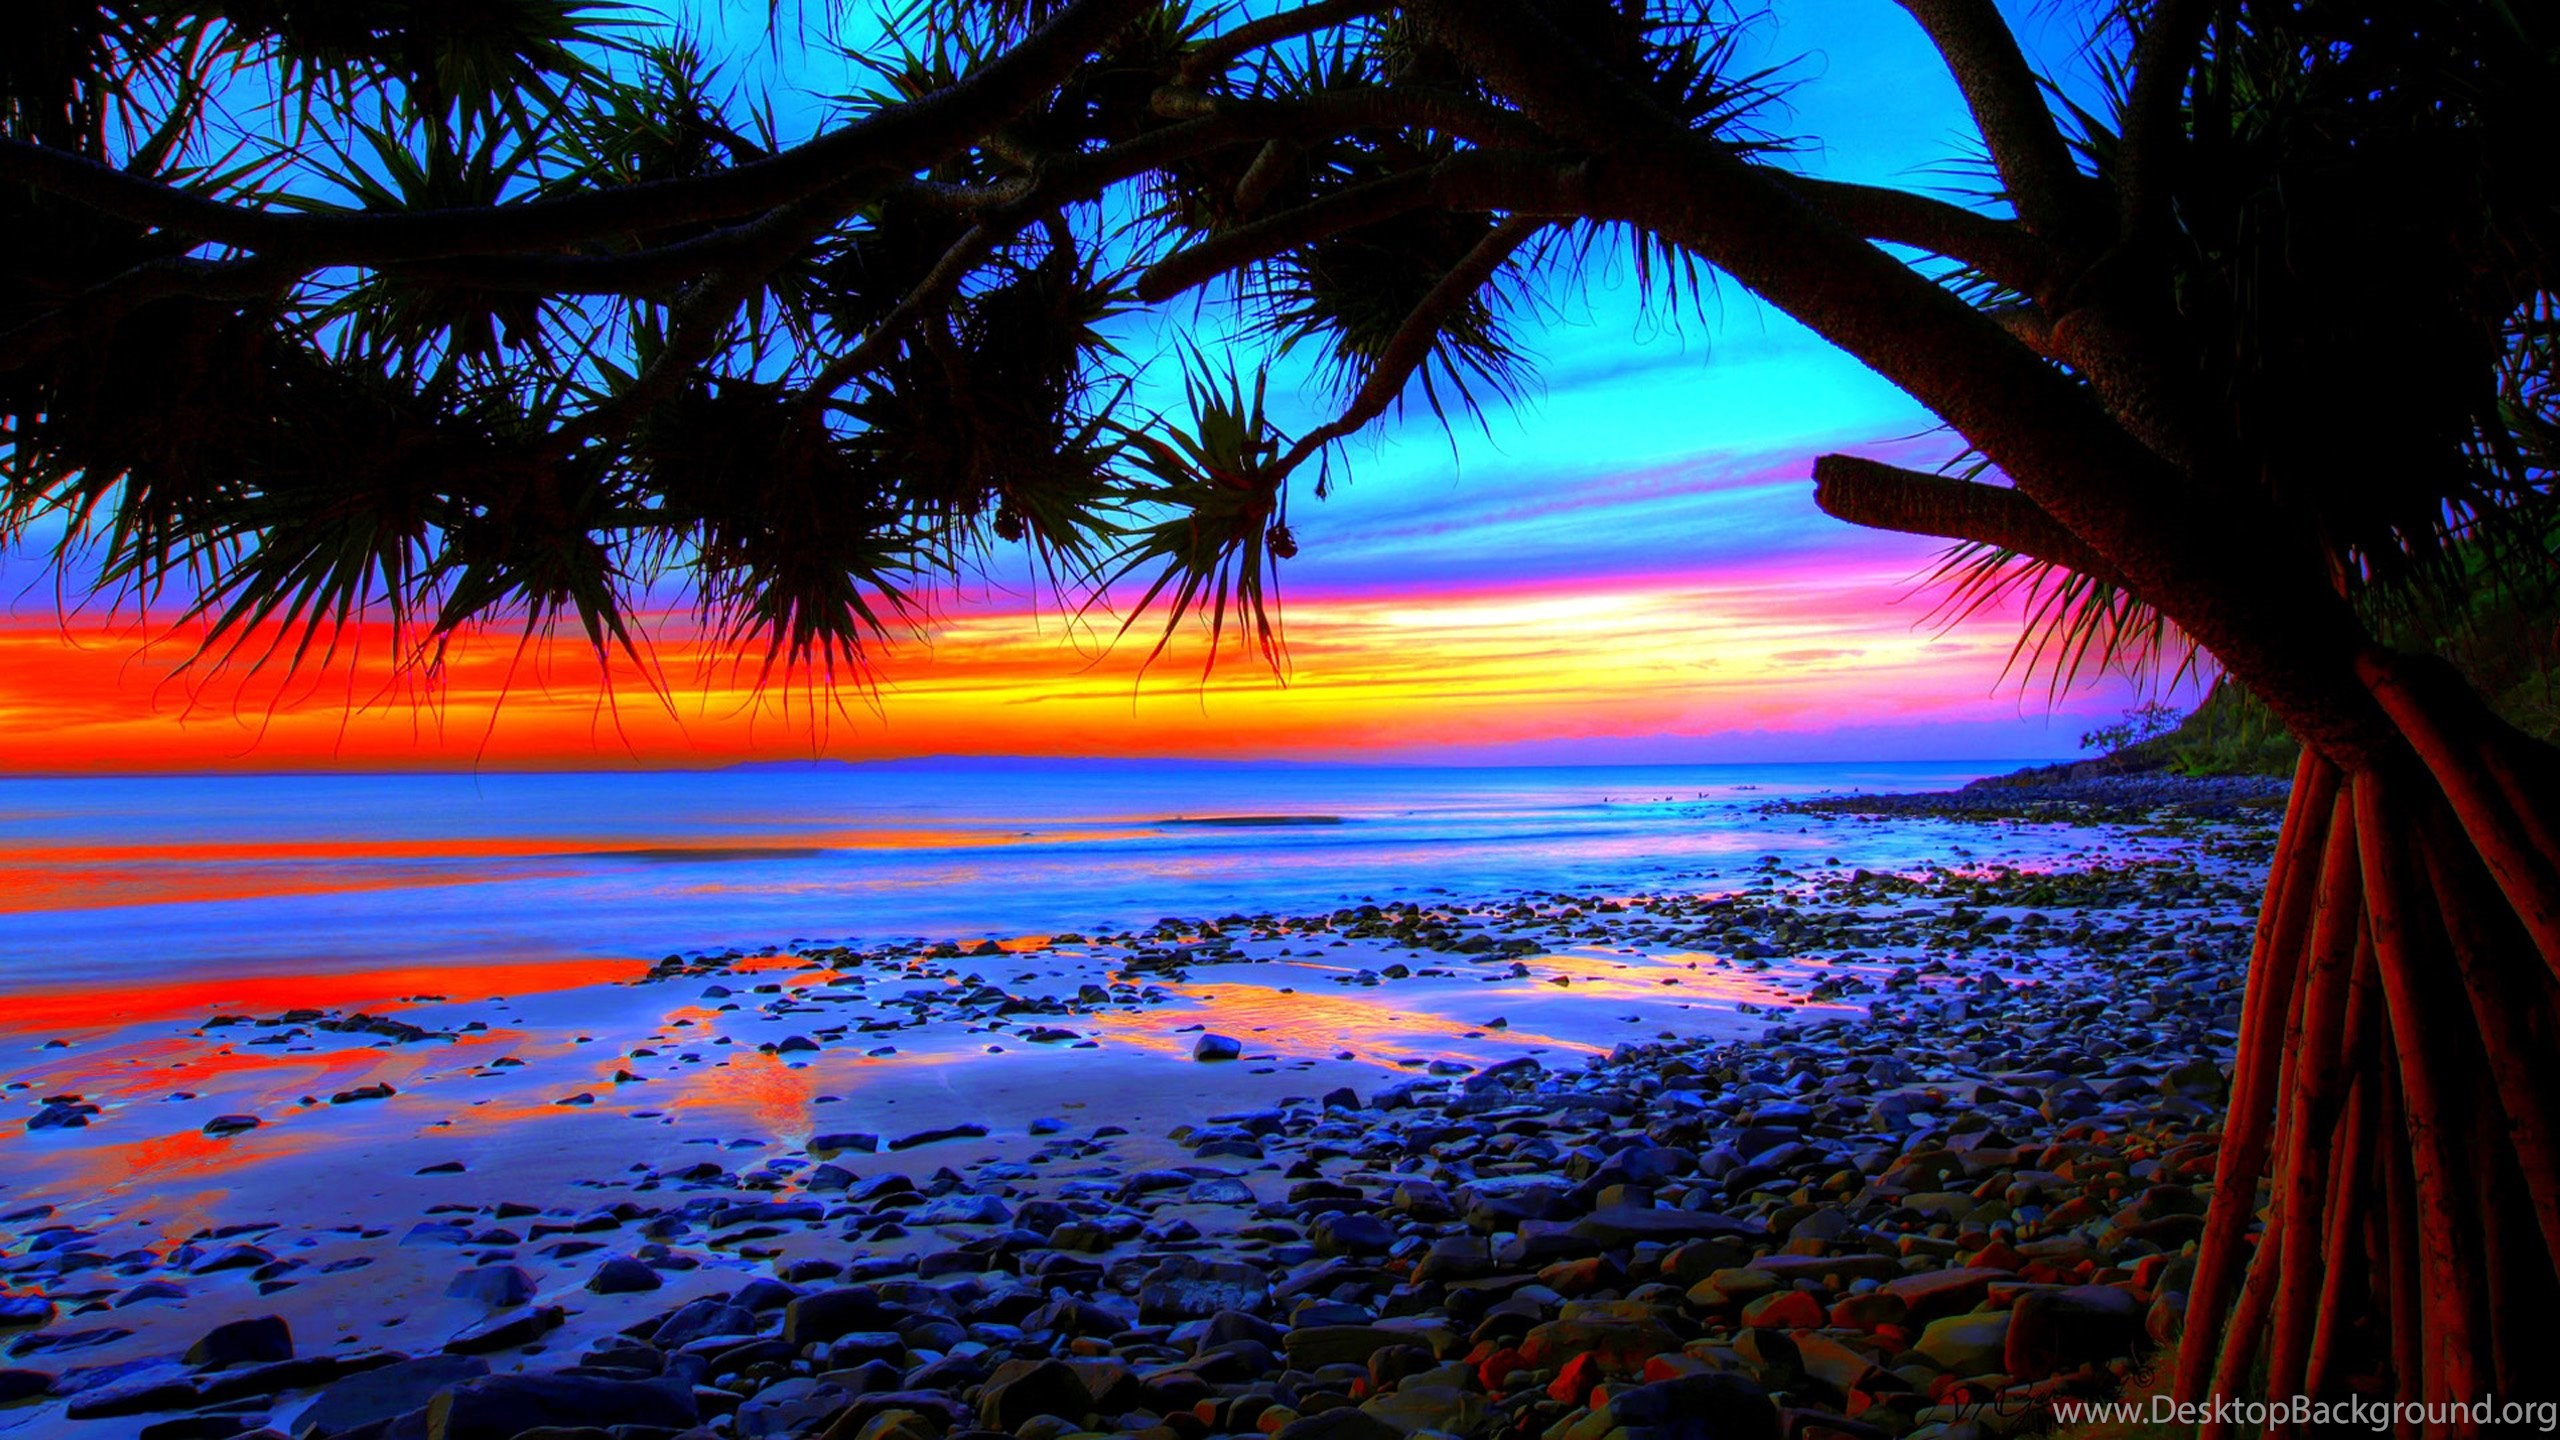 10 Best Tropical Beach Desktop Backgrounds Full Hd 1920: Tropical Beach Sunset Wallpapers 09, HD Desktop Wallpapers